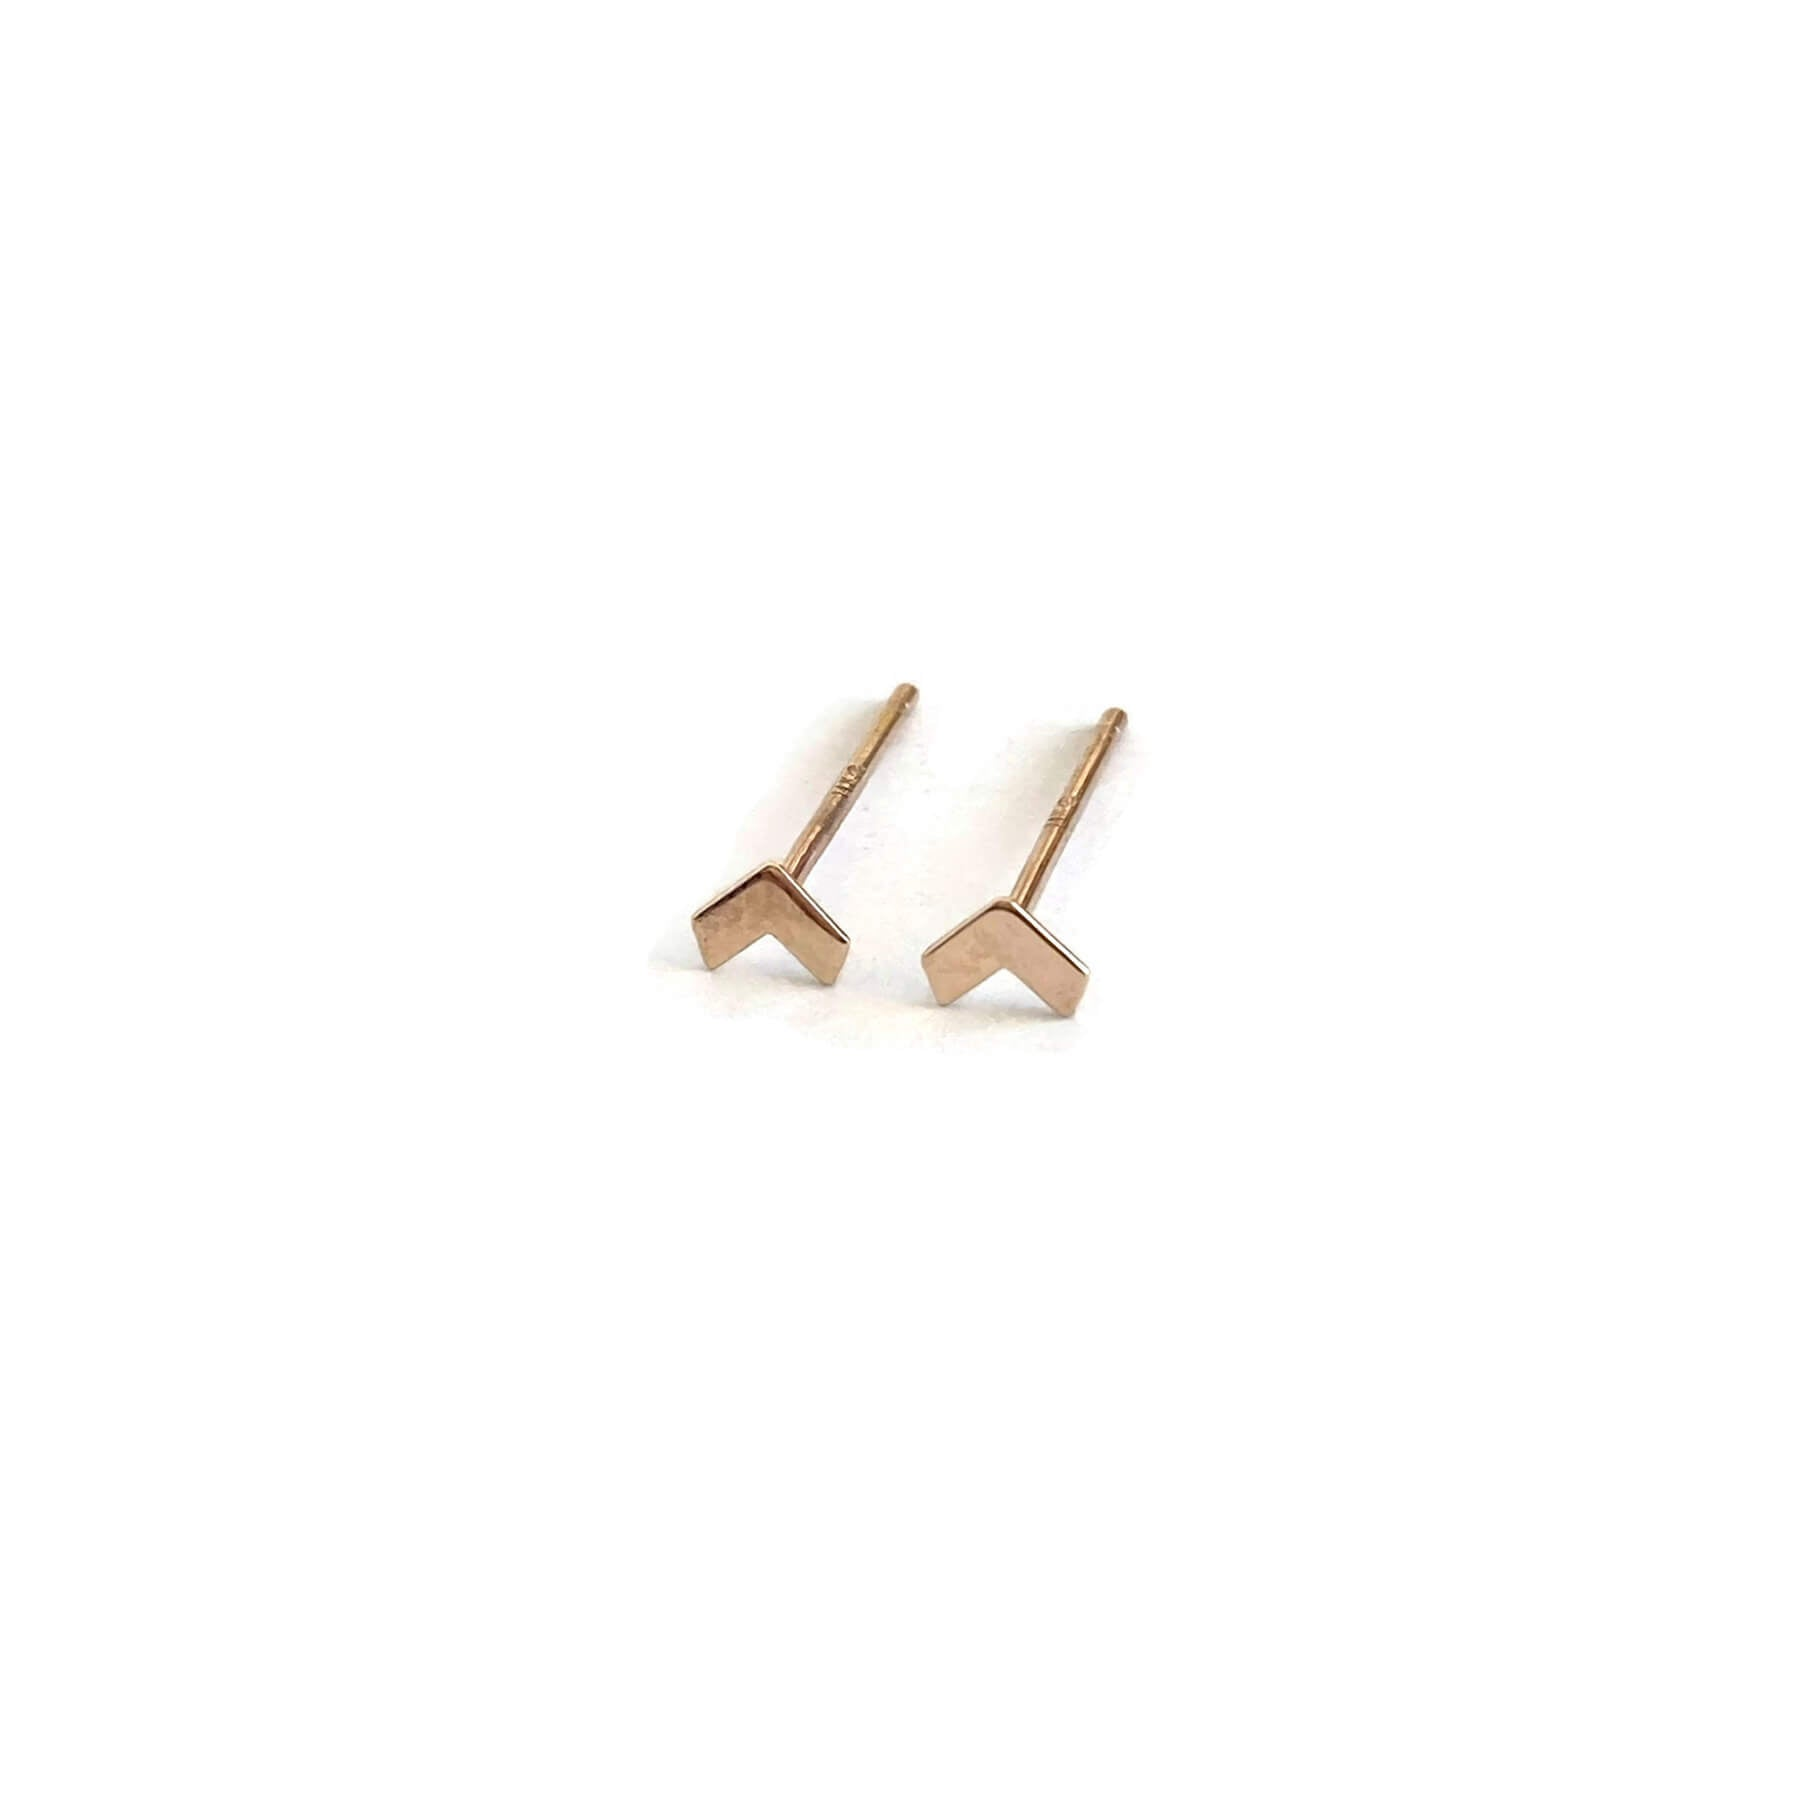 The tiny arrow stud earrings are made of solid 14k gold. The gold arrow earrings are for the earlobes or for cartilage pierced ears.